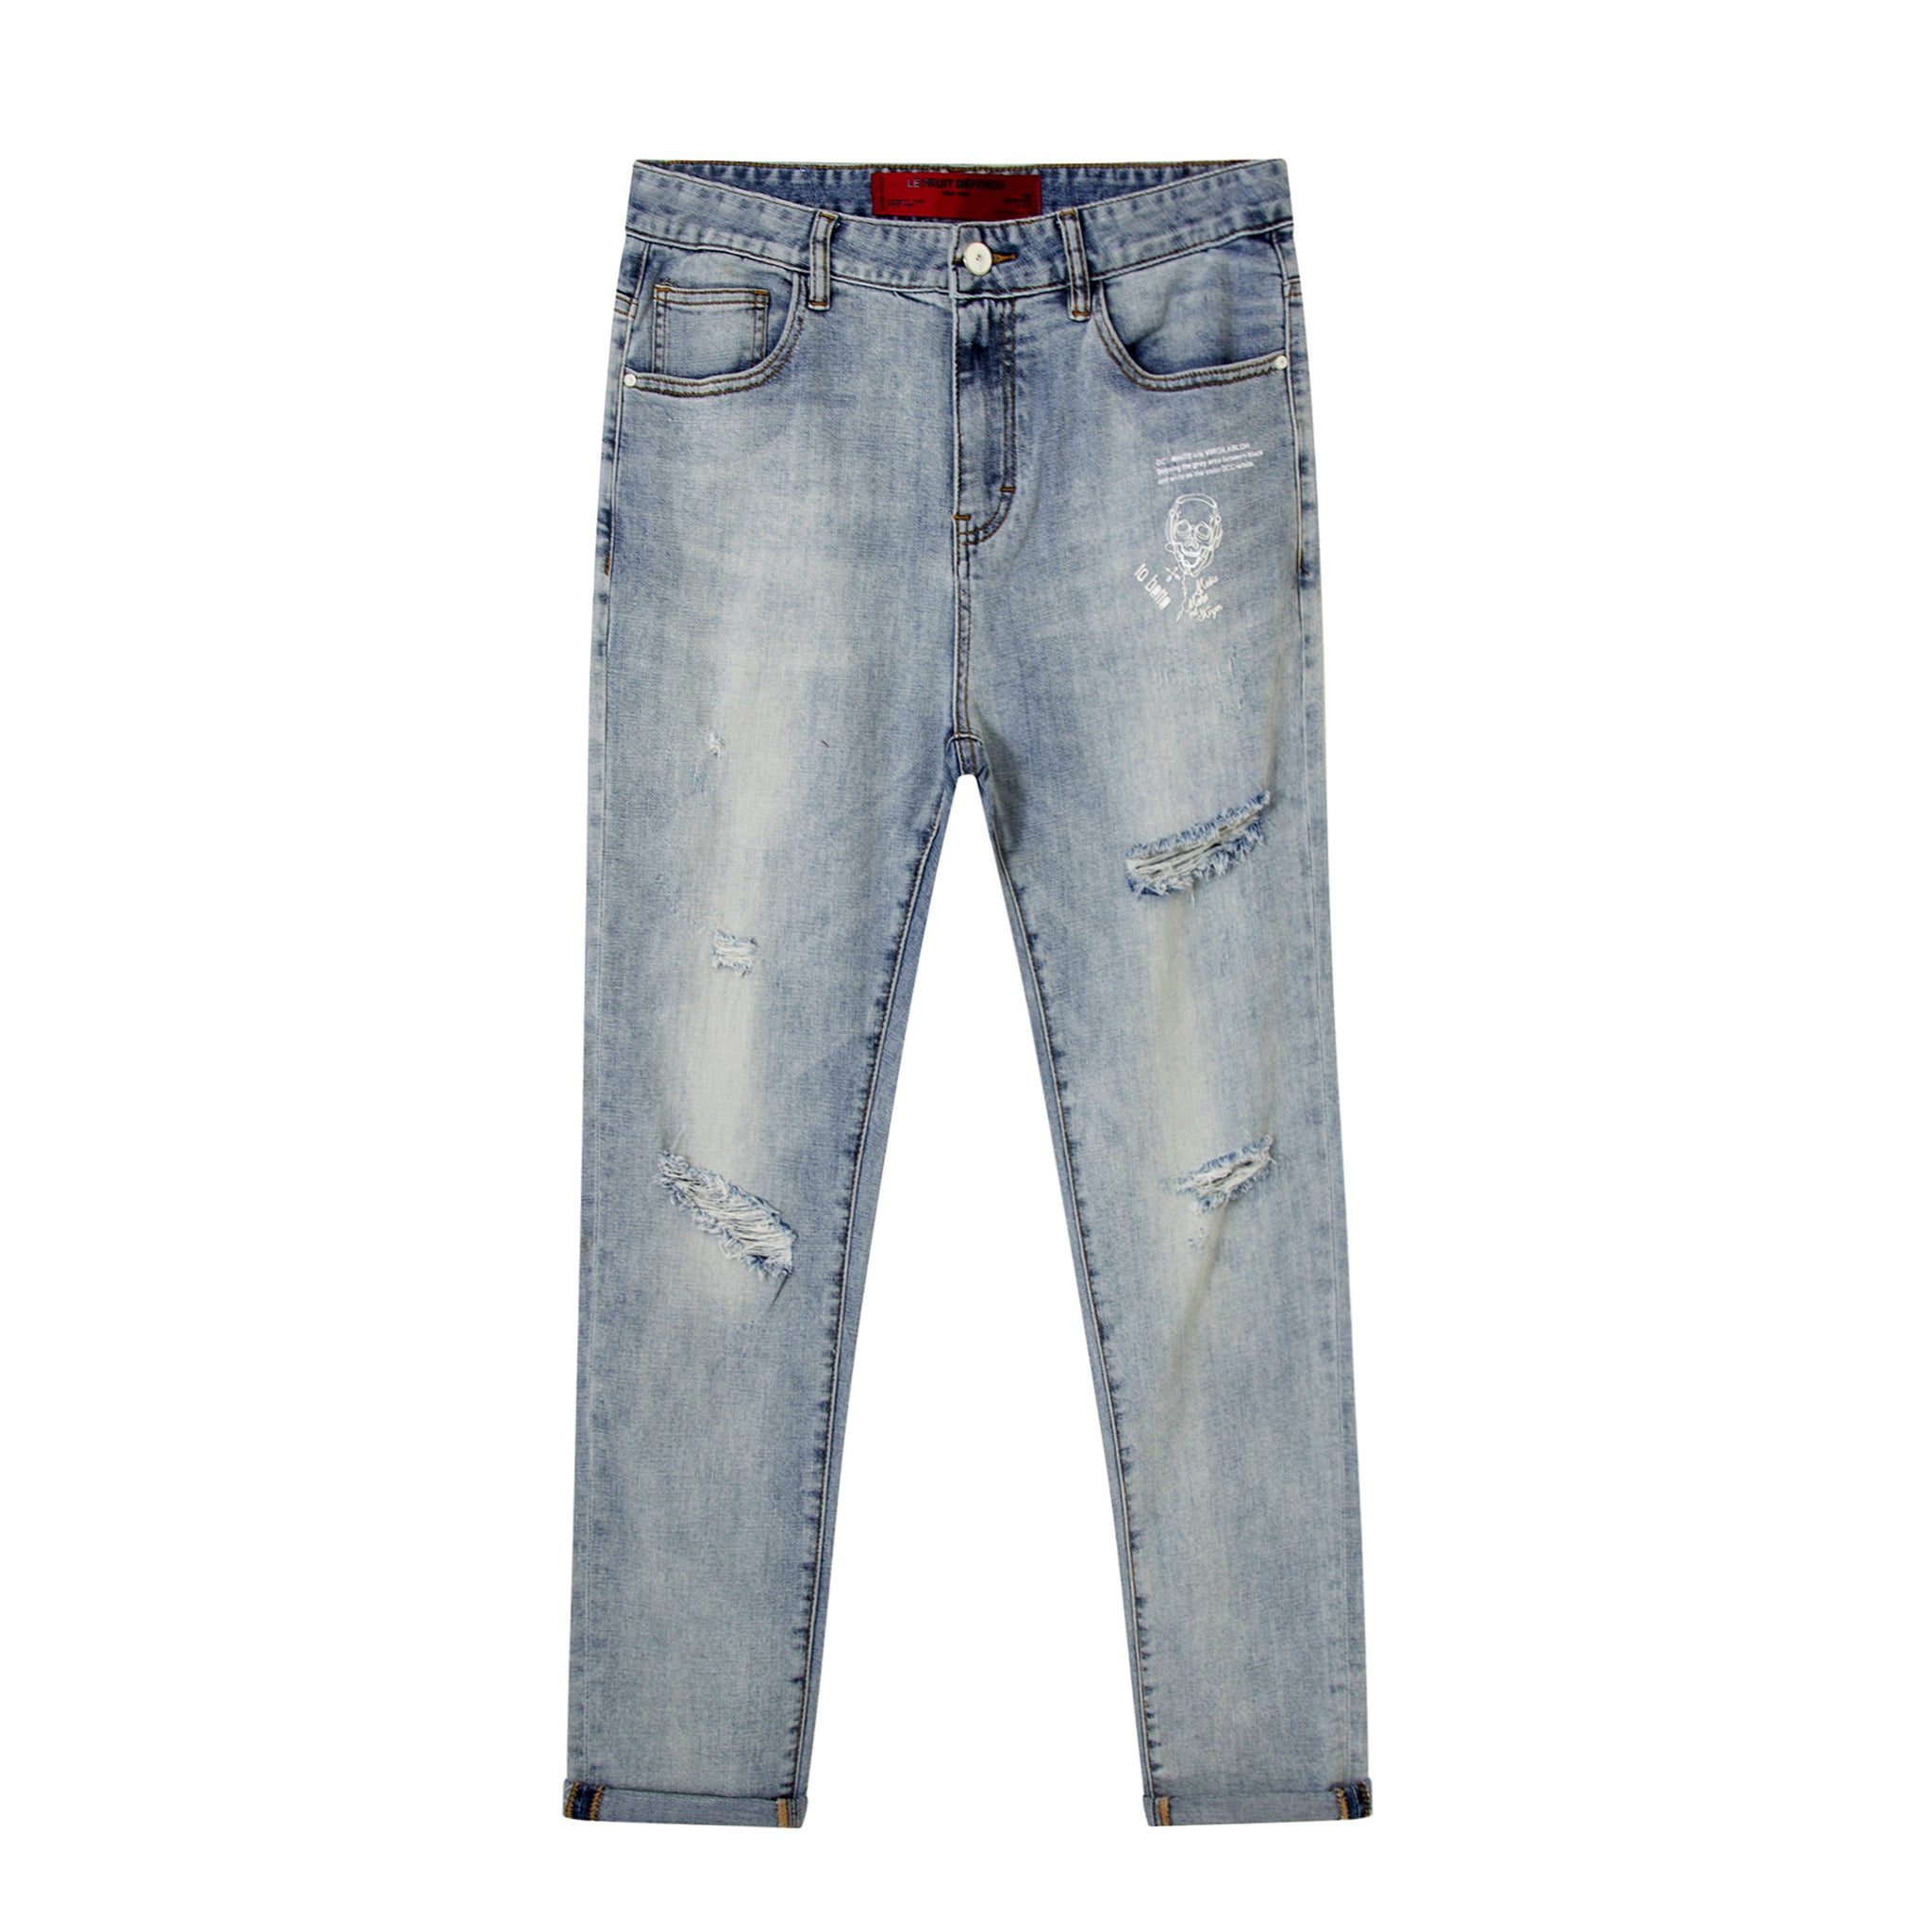 Classic Stone Wash Jeans